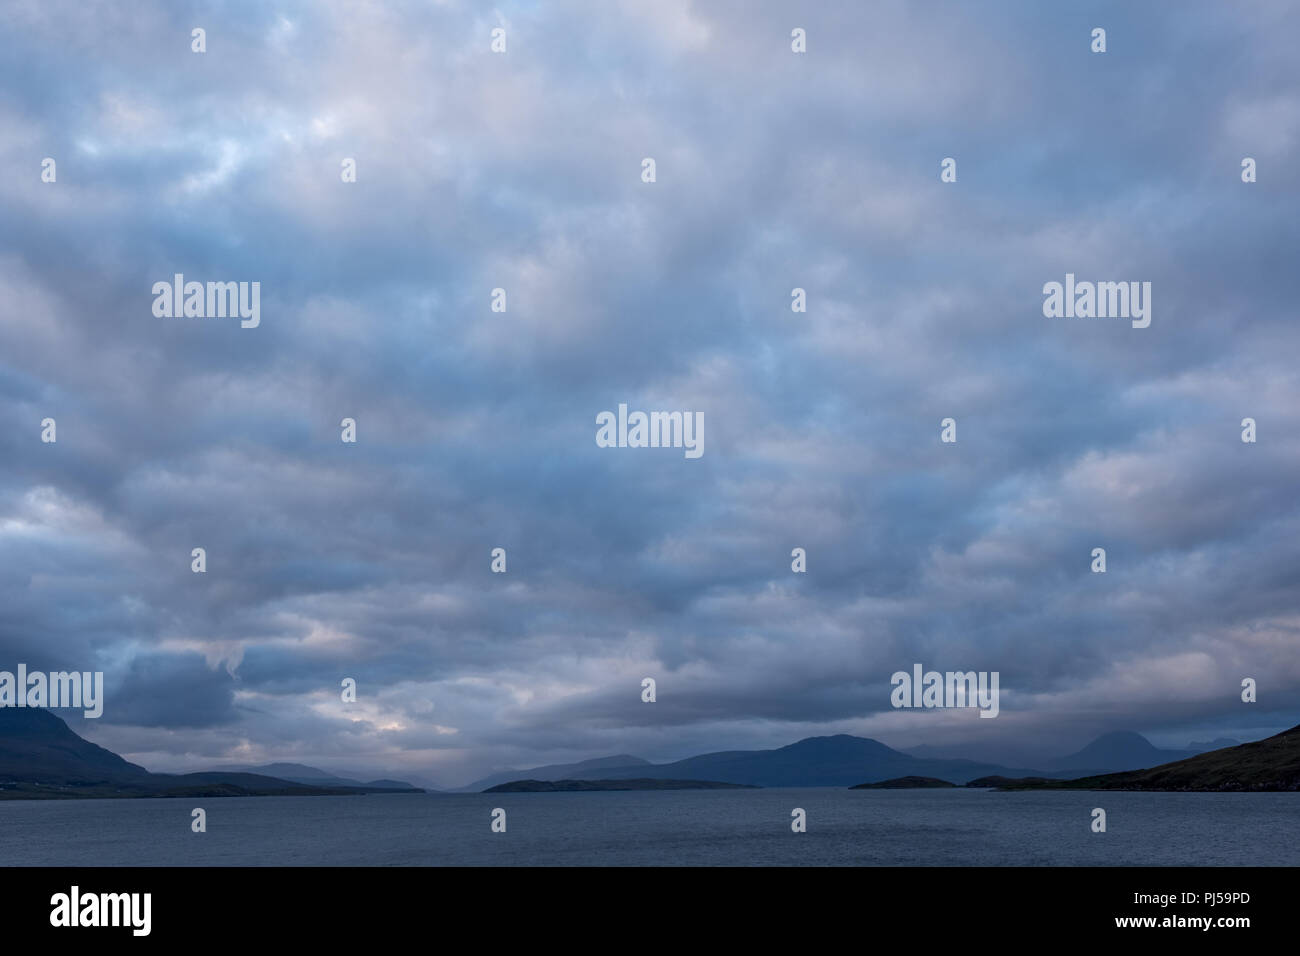 The Summer Isles at dusk (blue hour), photographed from the UK mainland, north of Ullapool on the west coast of Scotland Rocky outcrop in foreground. - Stock Image